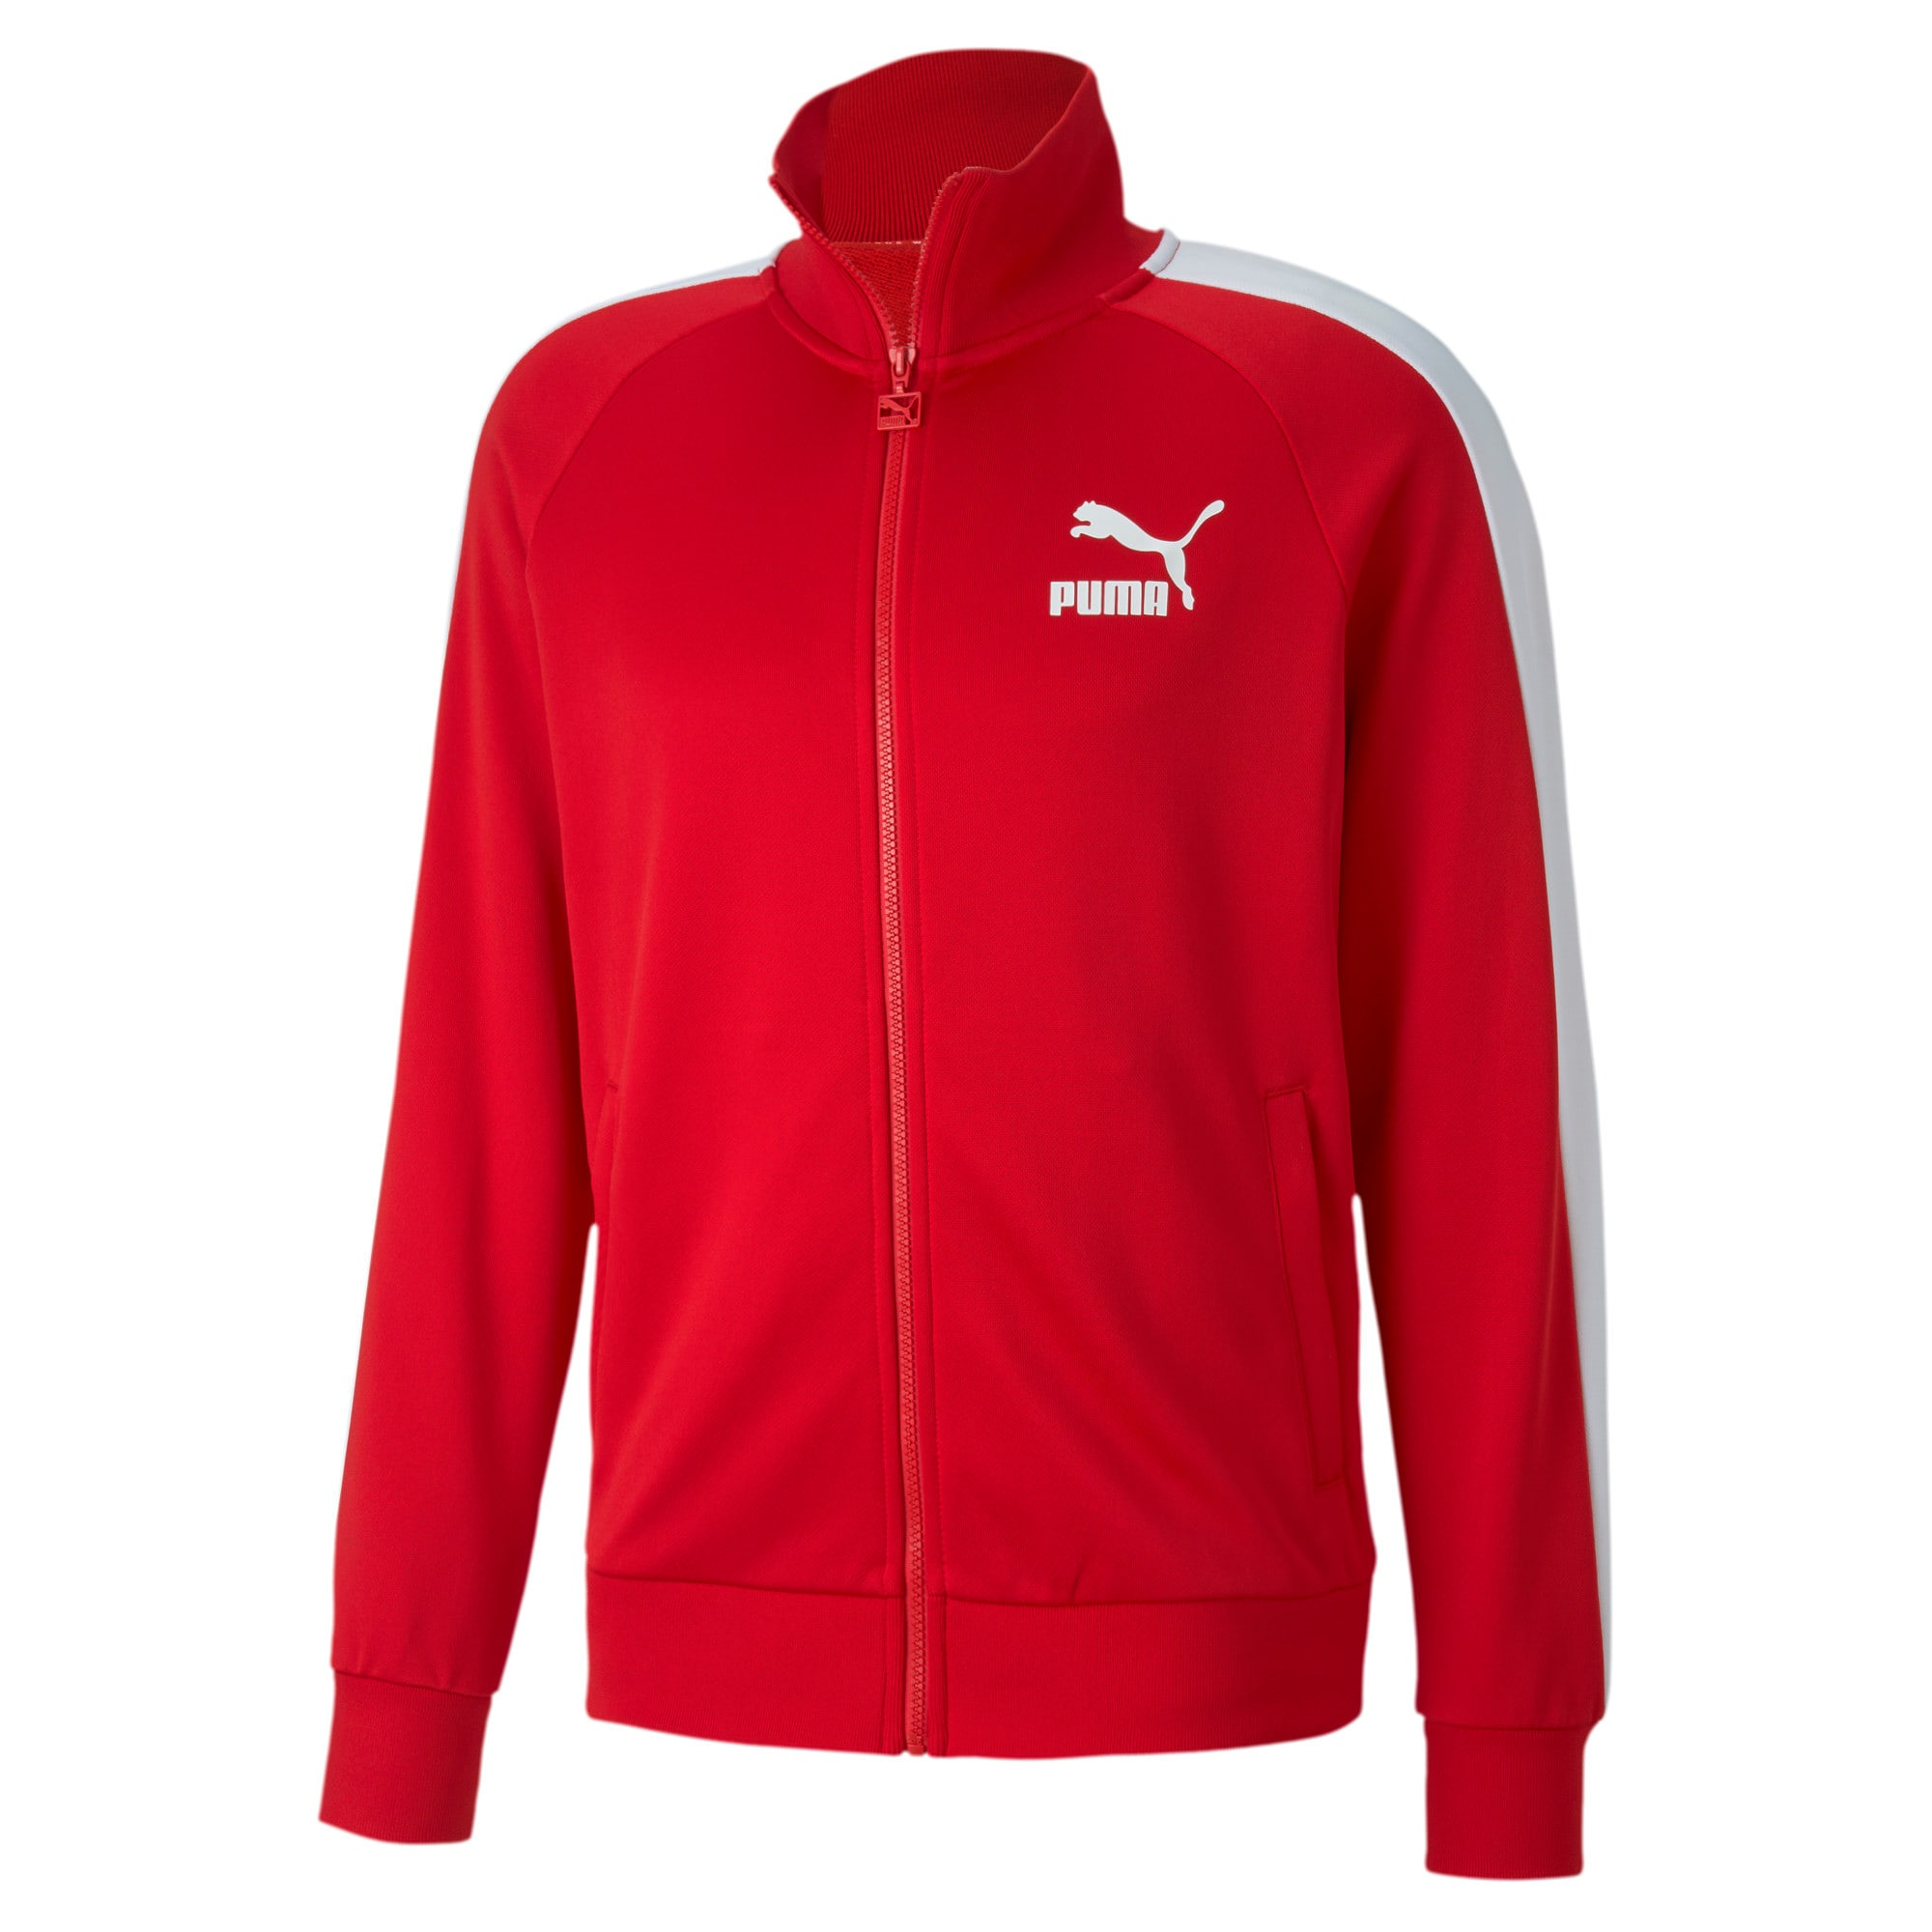 Thumbnail 4 of Iconic T7 Men's Track Jacket, High Risk Red, medium